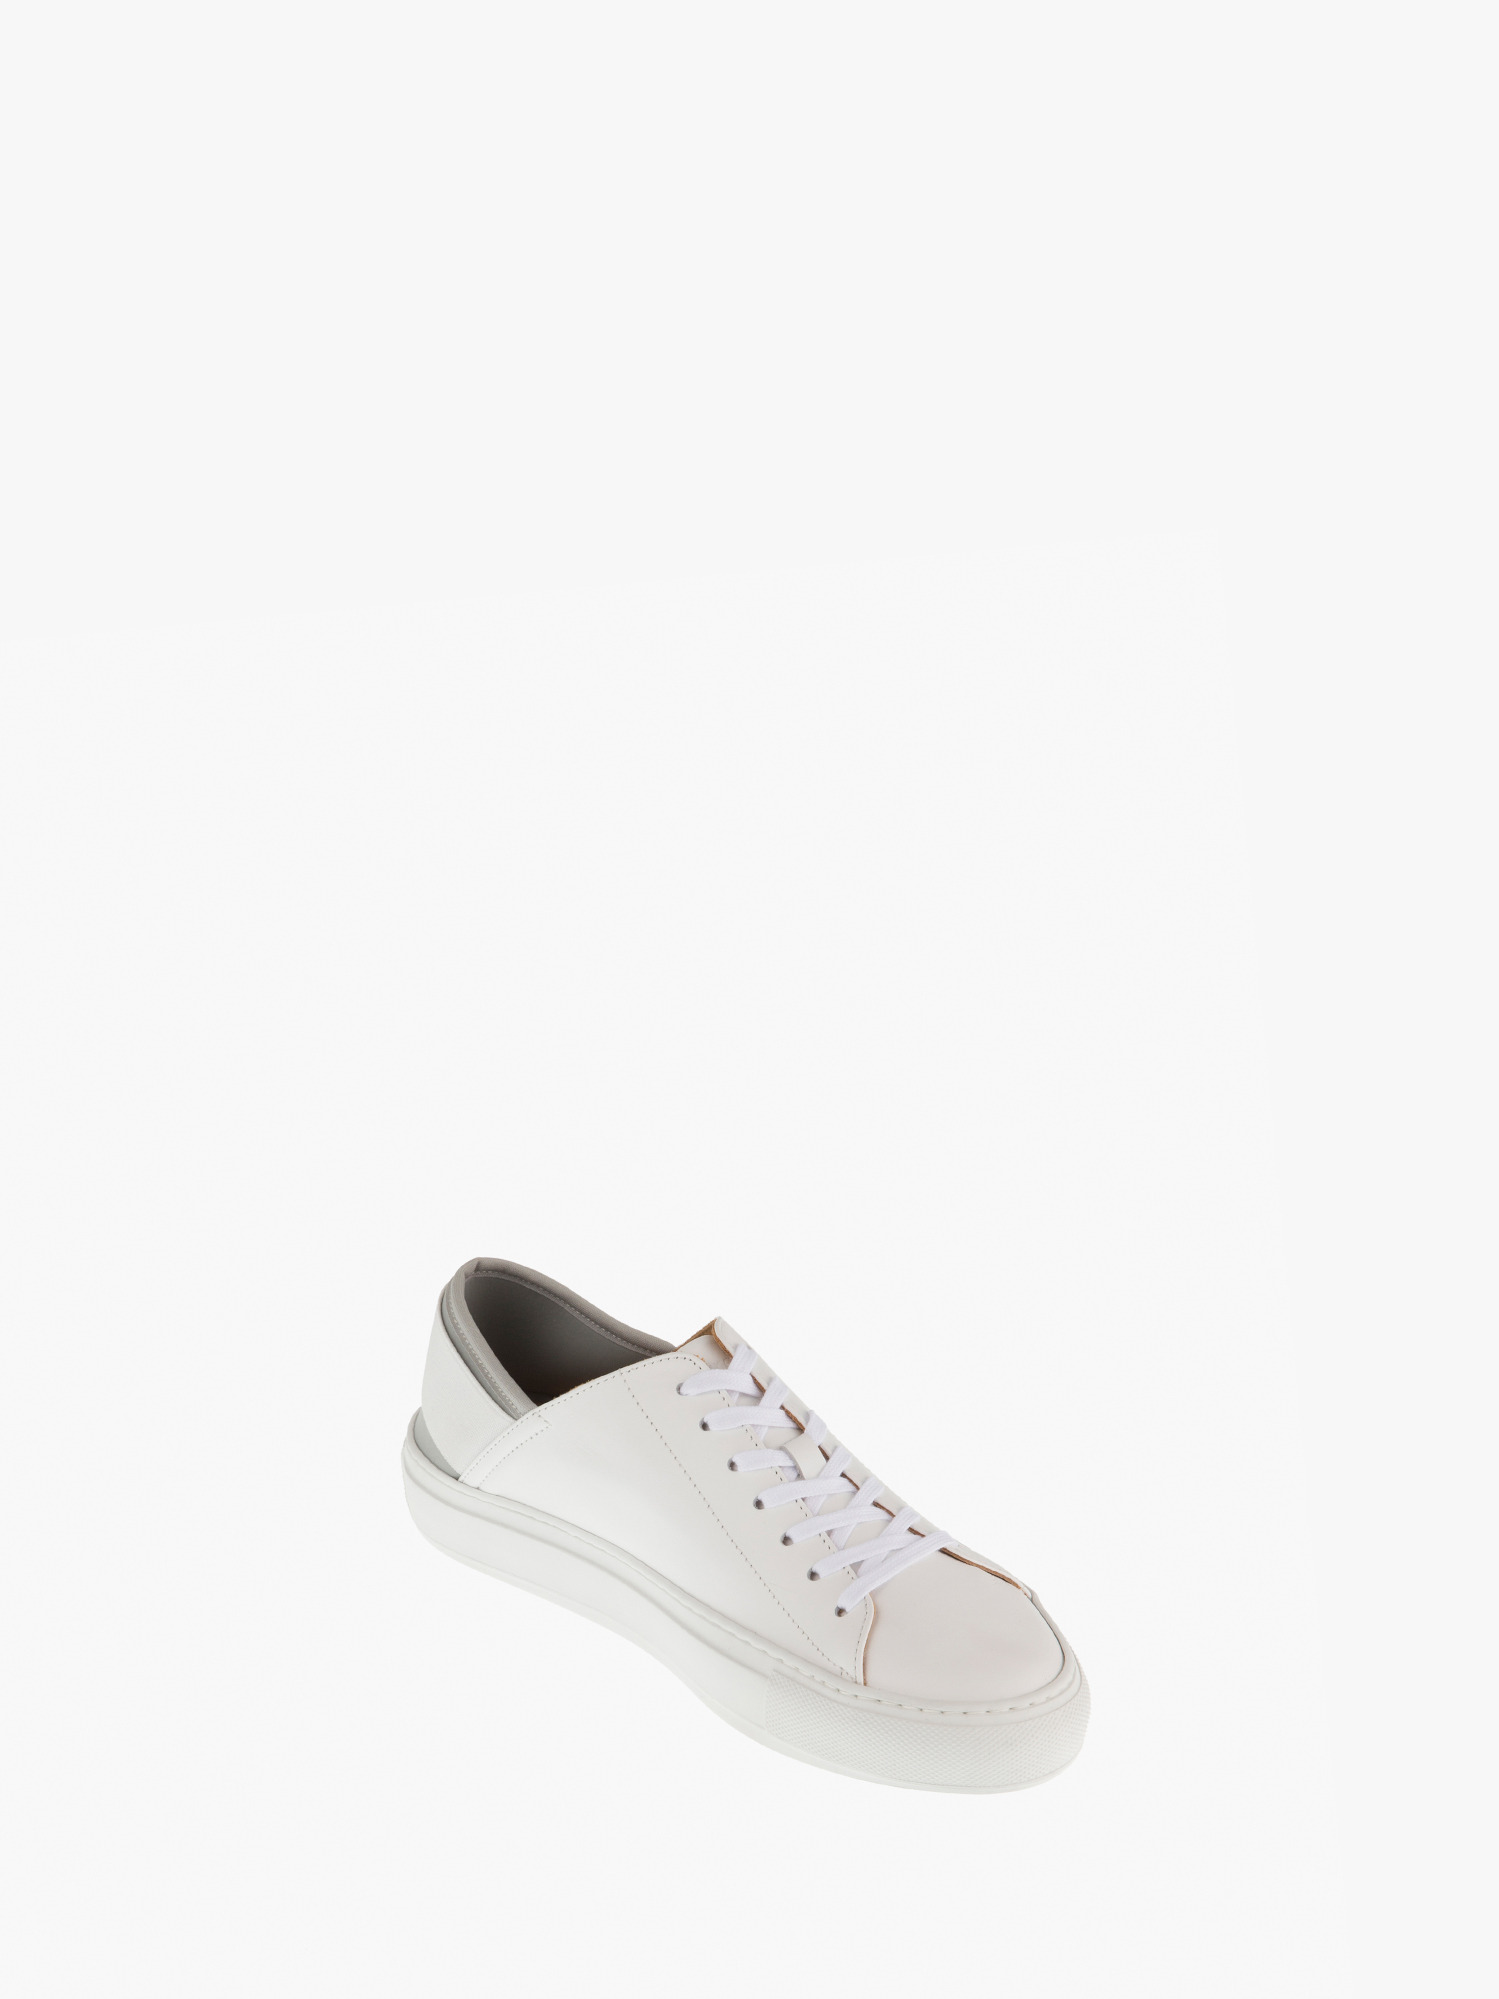 blucher 04 leather white(w)